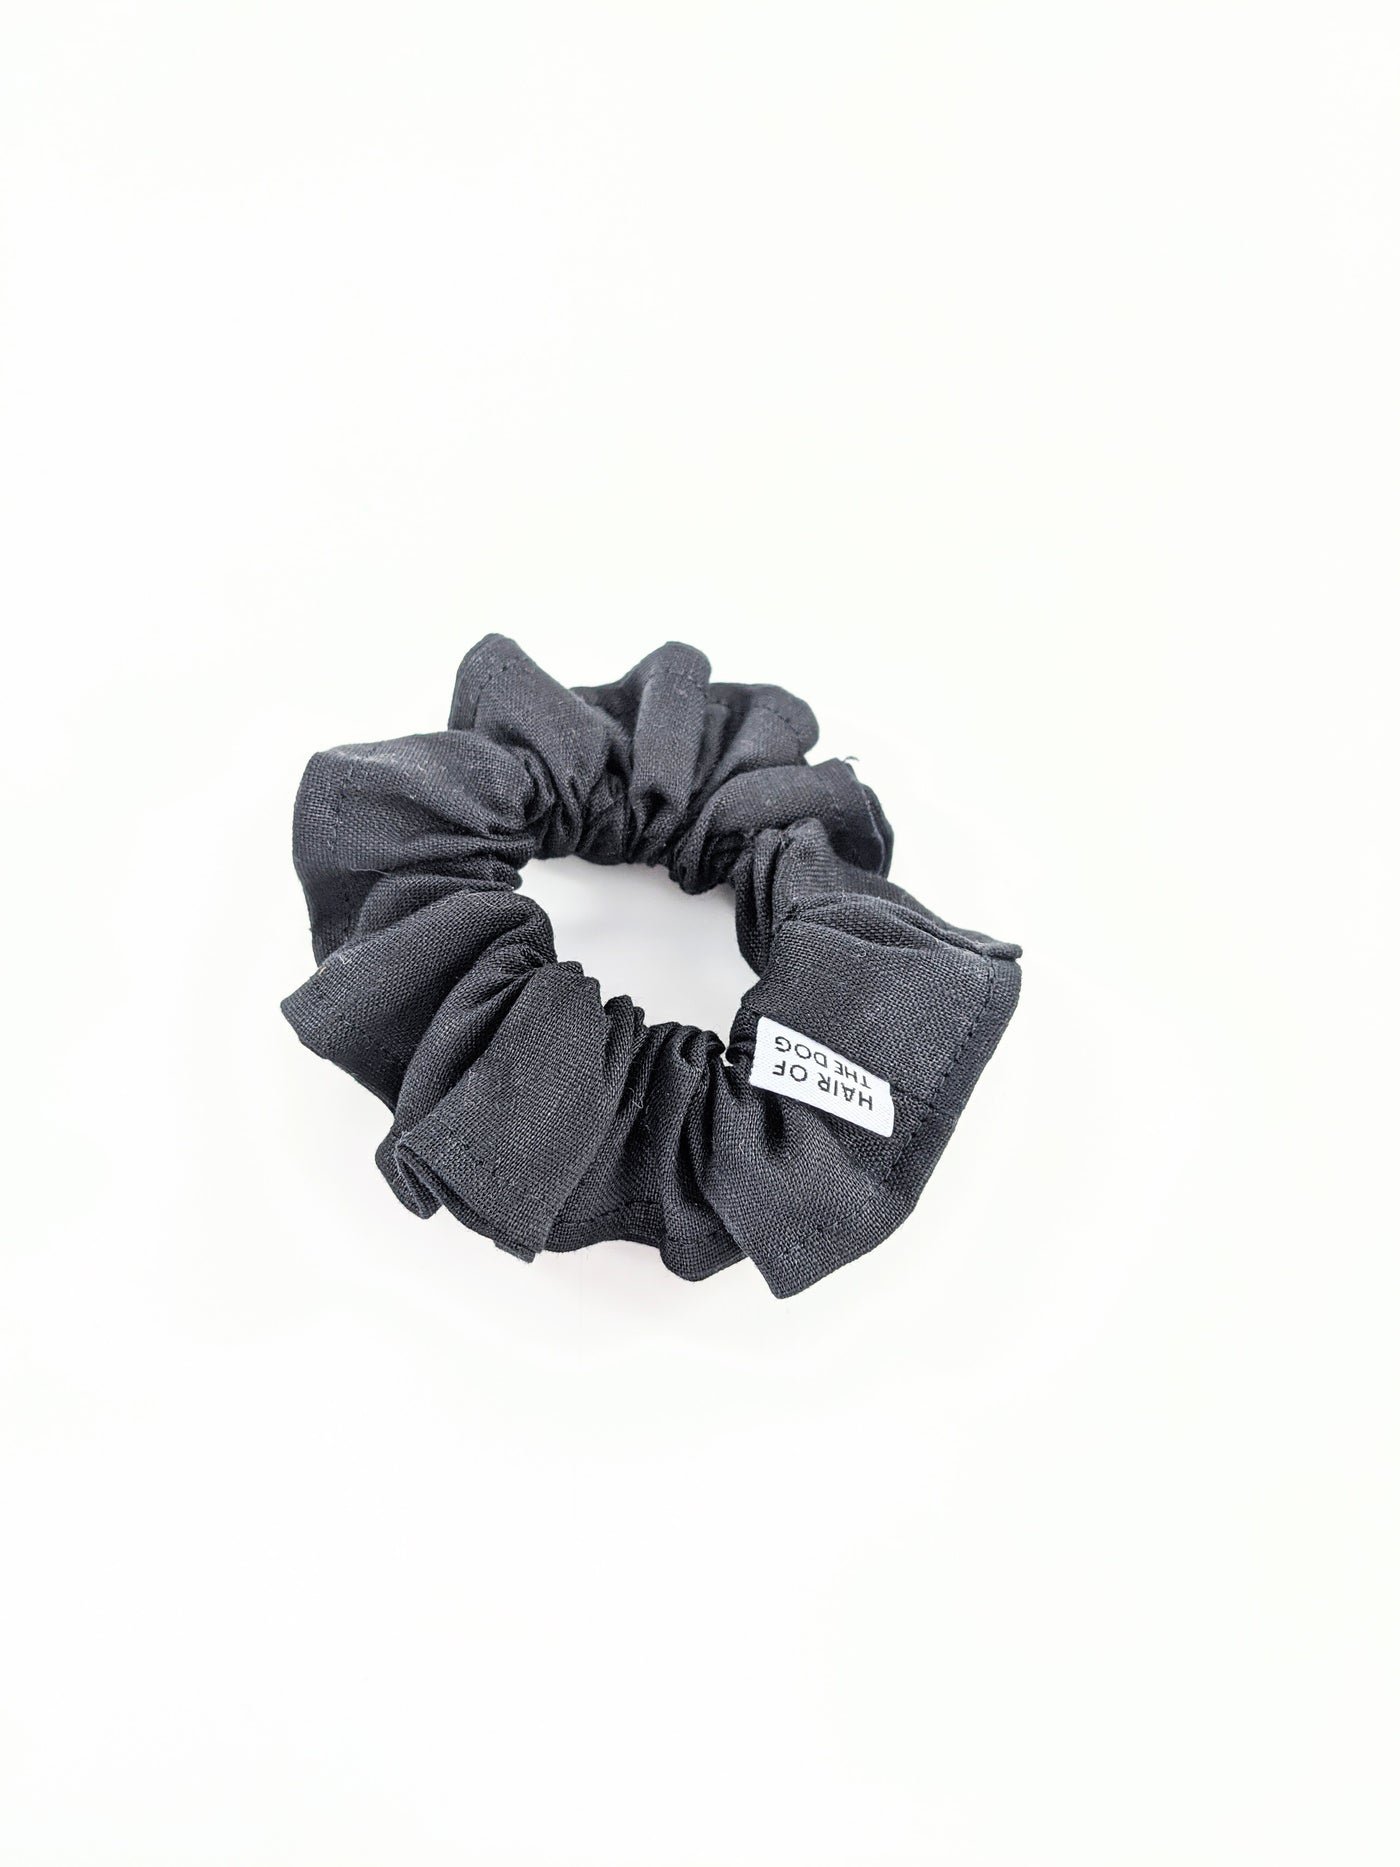 Linen scrunchies by Hair of the Dog Scrunchies available at Local Assembly